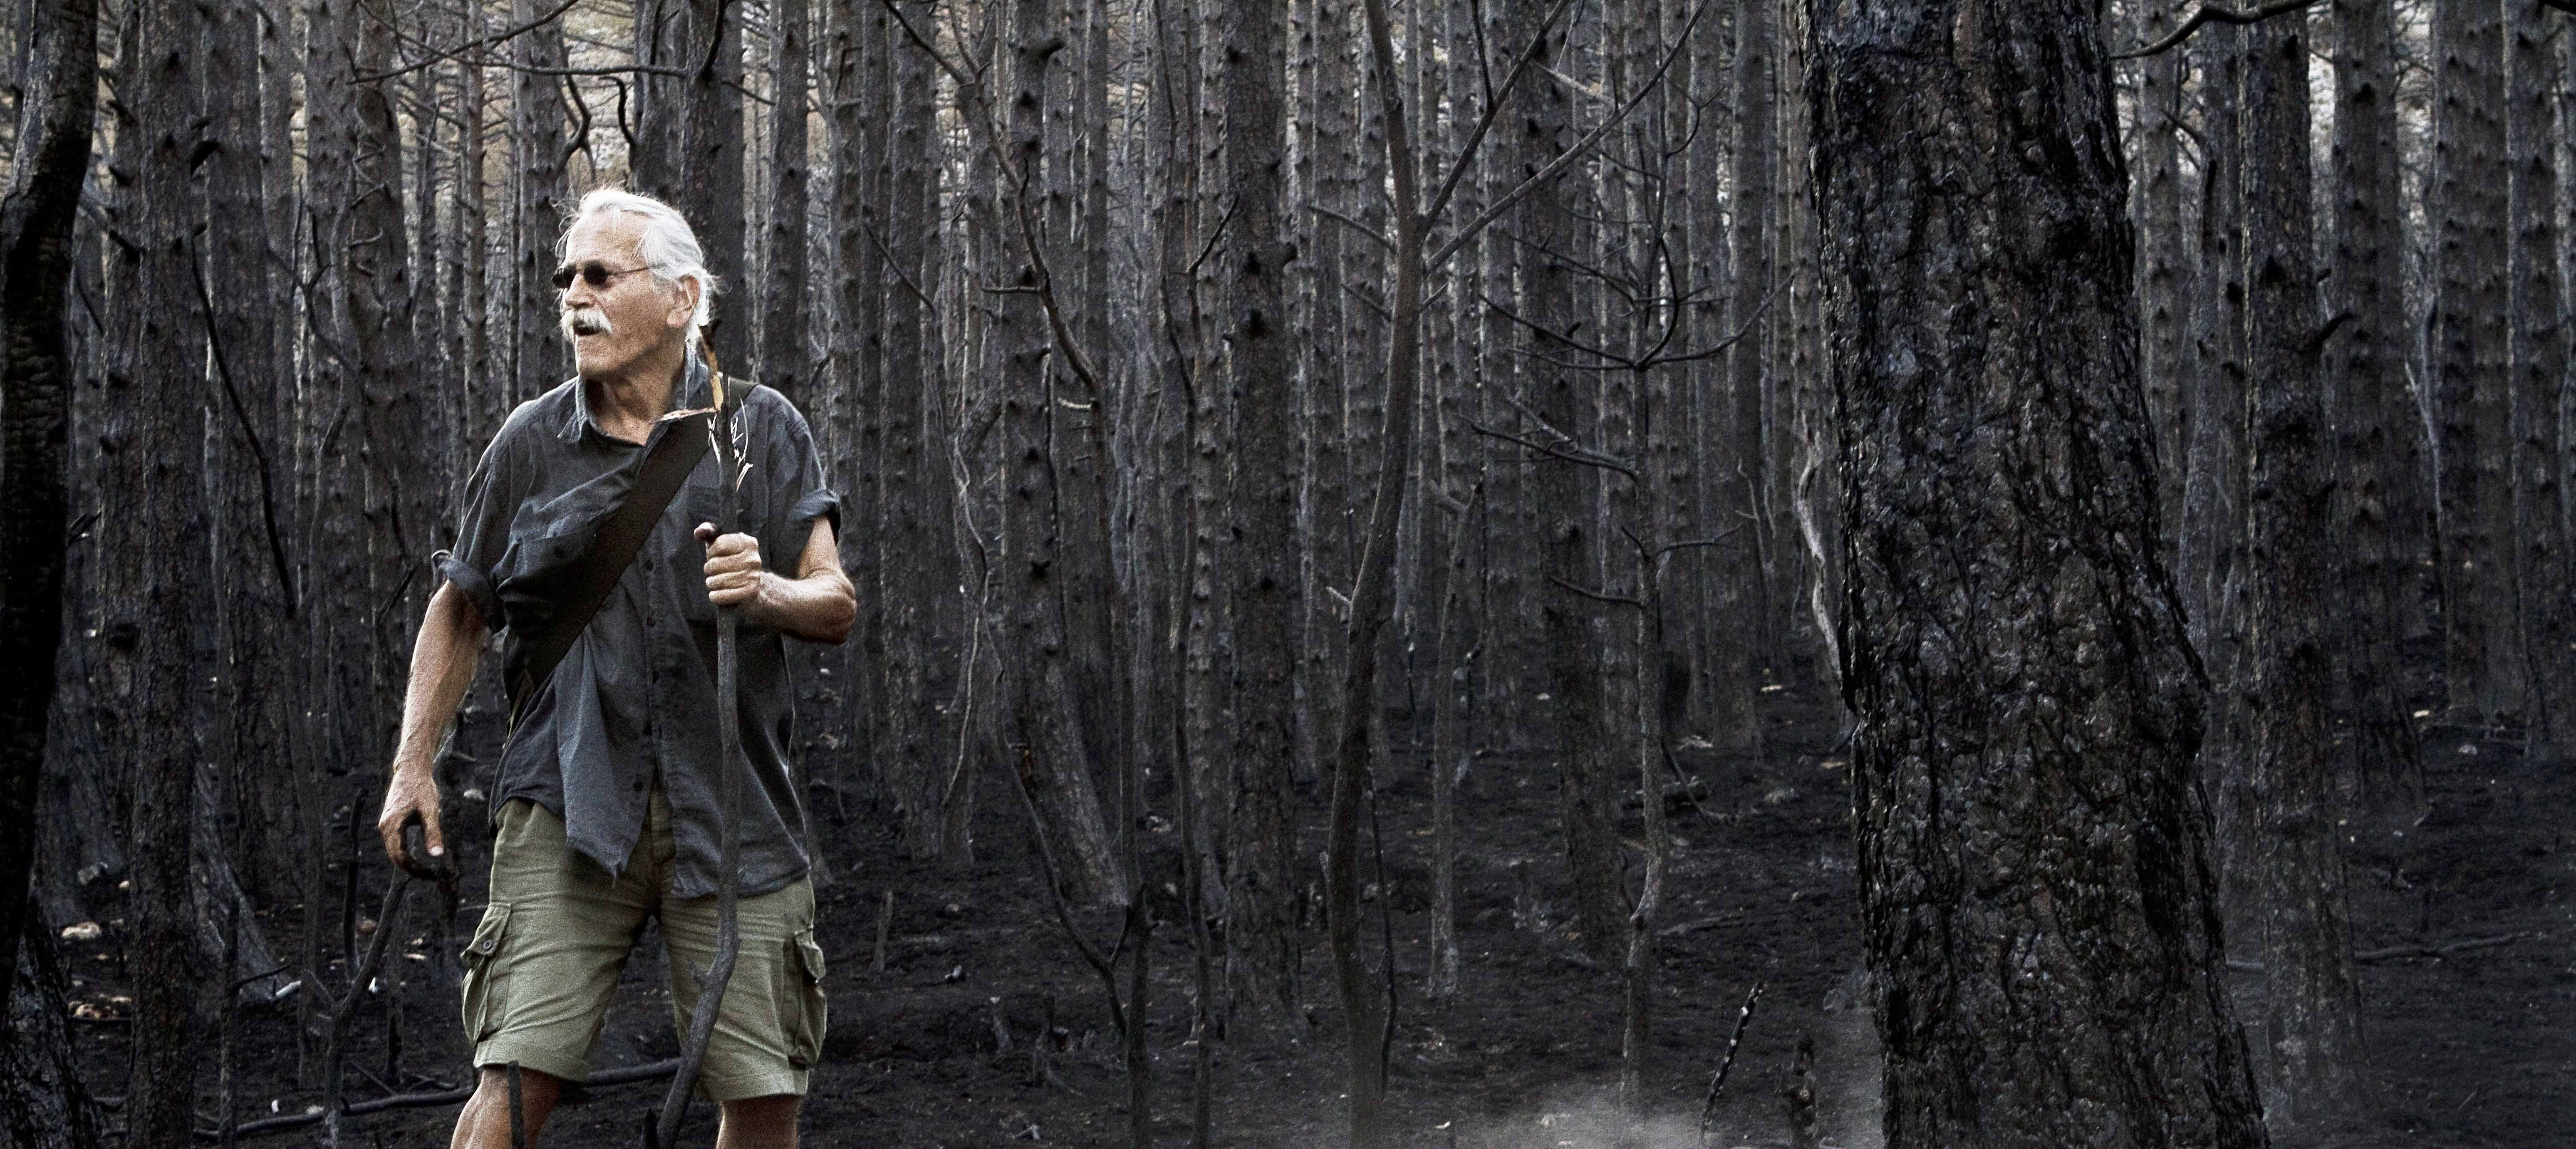 An artist moves through a forrest in the documentary Artist on vacation